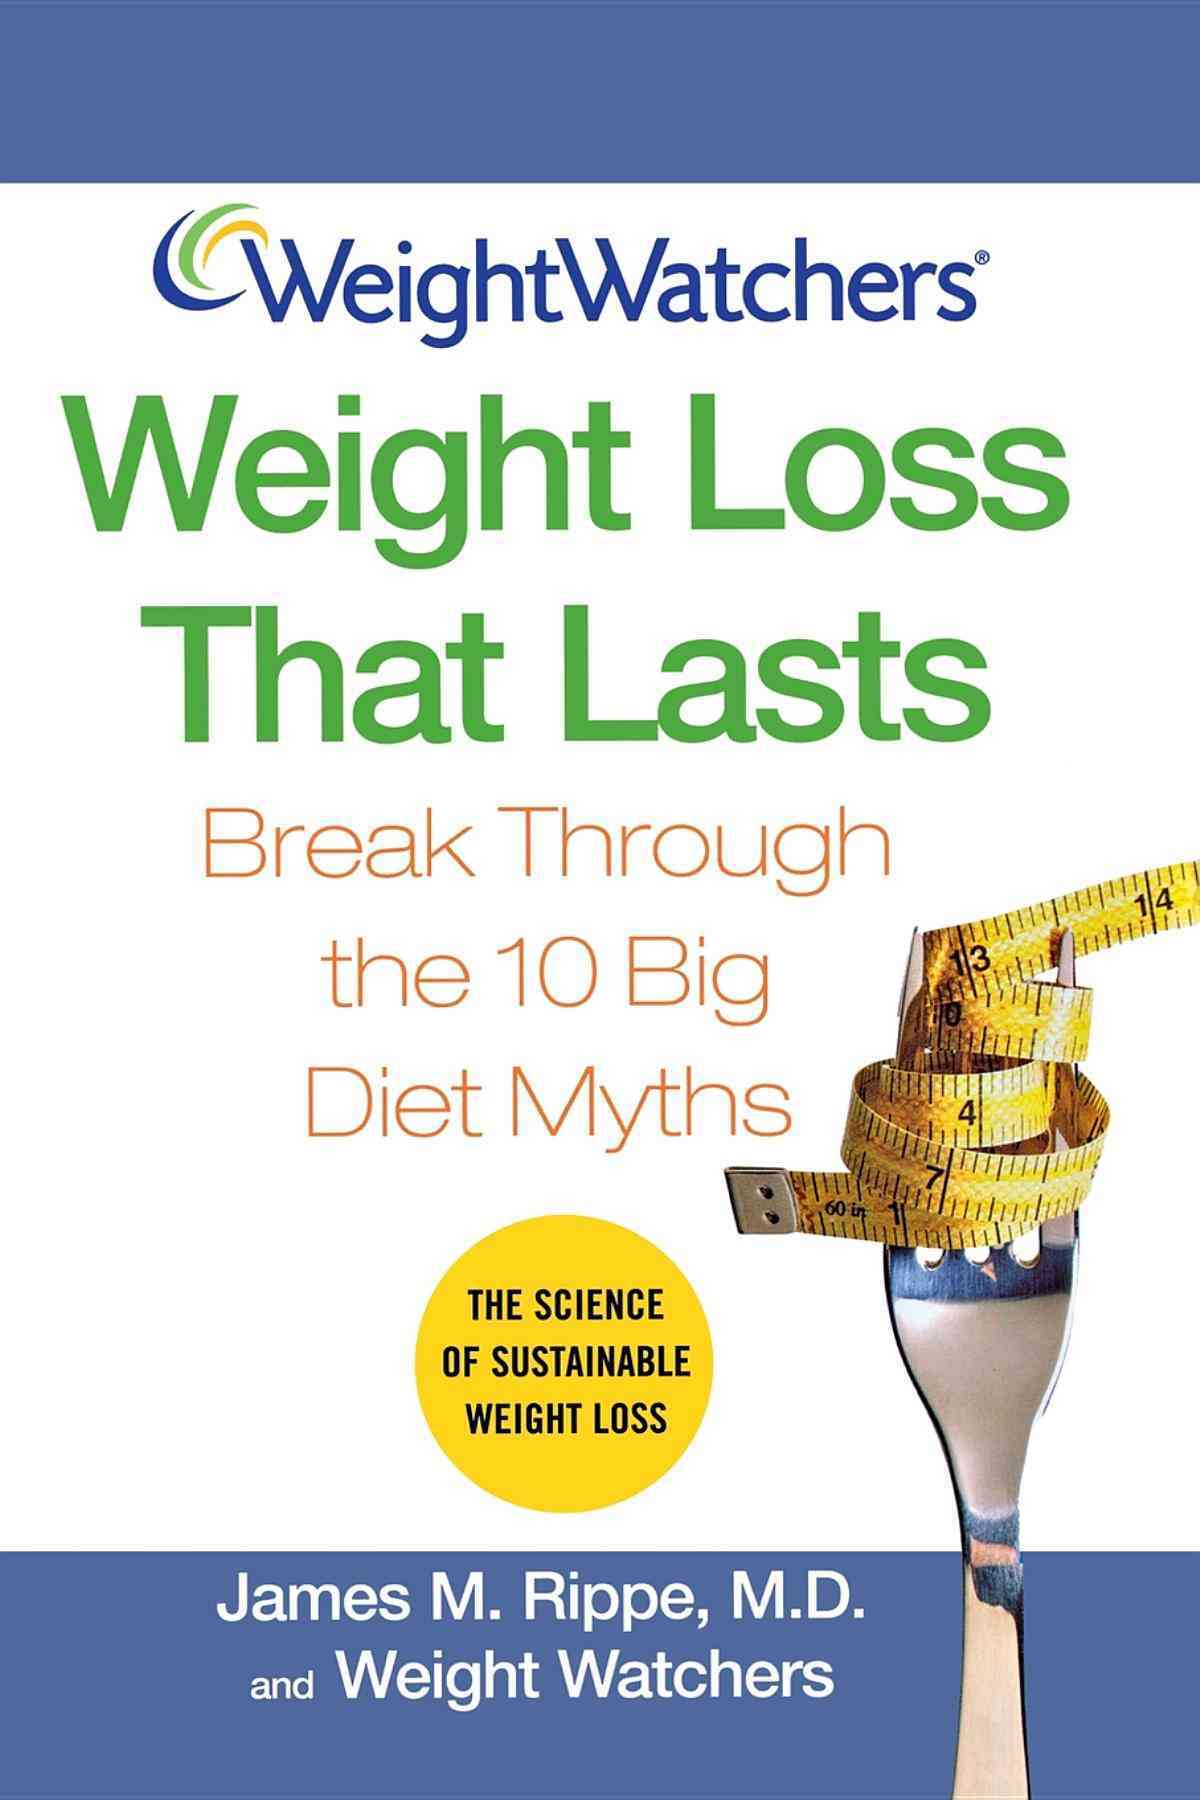 The 17 Day Diet Hardcover book Mike Moreno FREE SHIPPING seventeen weight loss